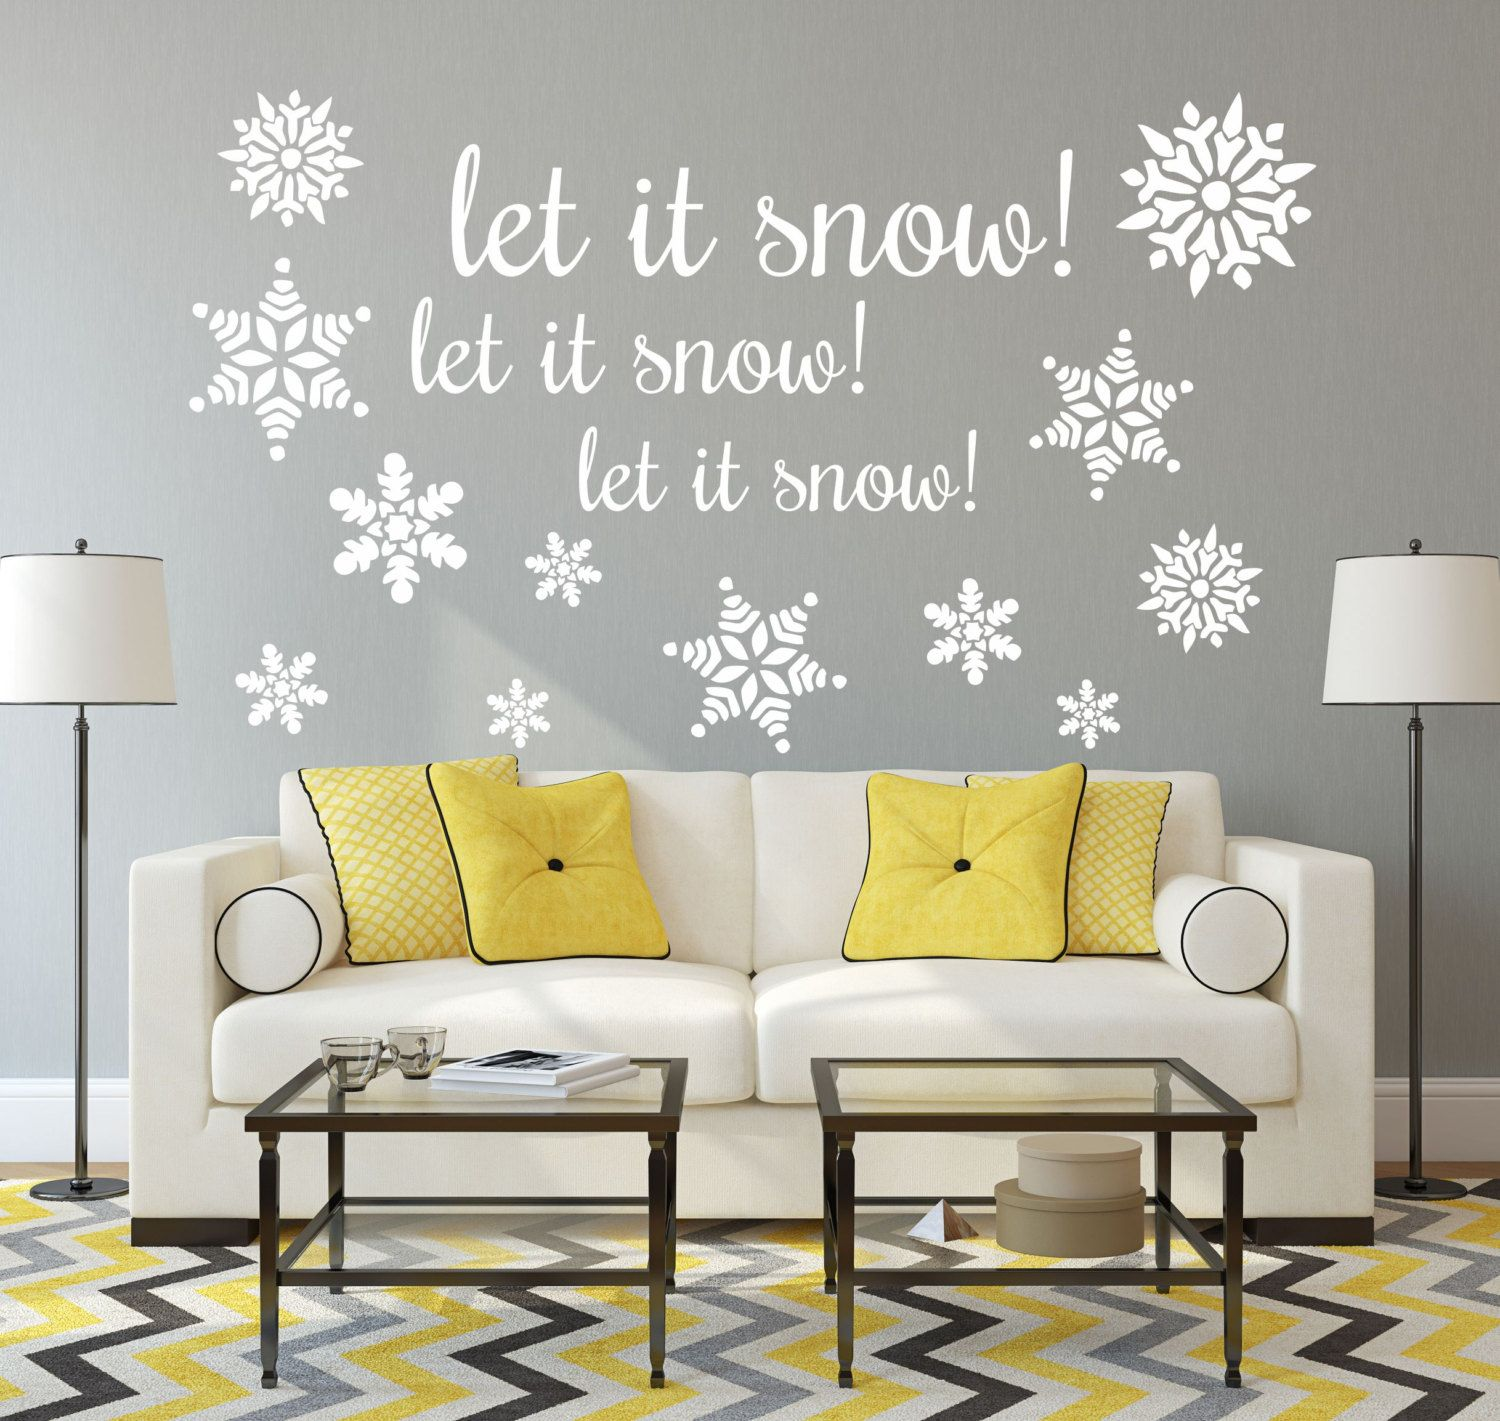 Christmas Decorations, Christmas Decor, Snowflakes Decals, Let It Snow,  Christmas Wall Decal